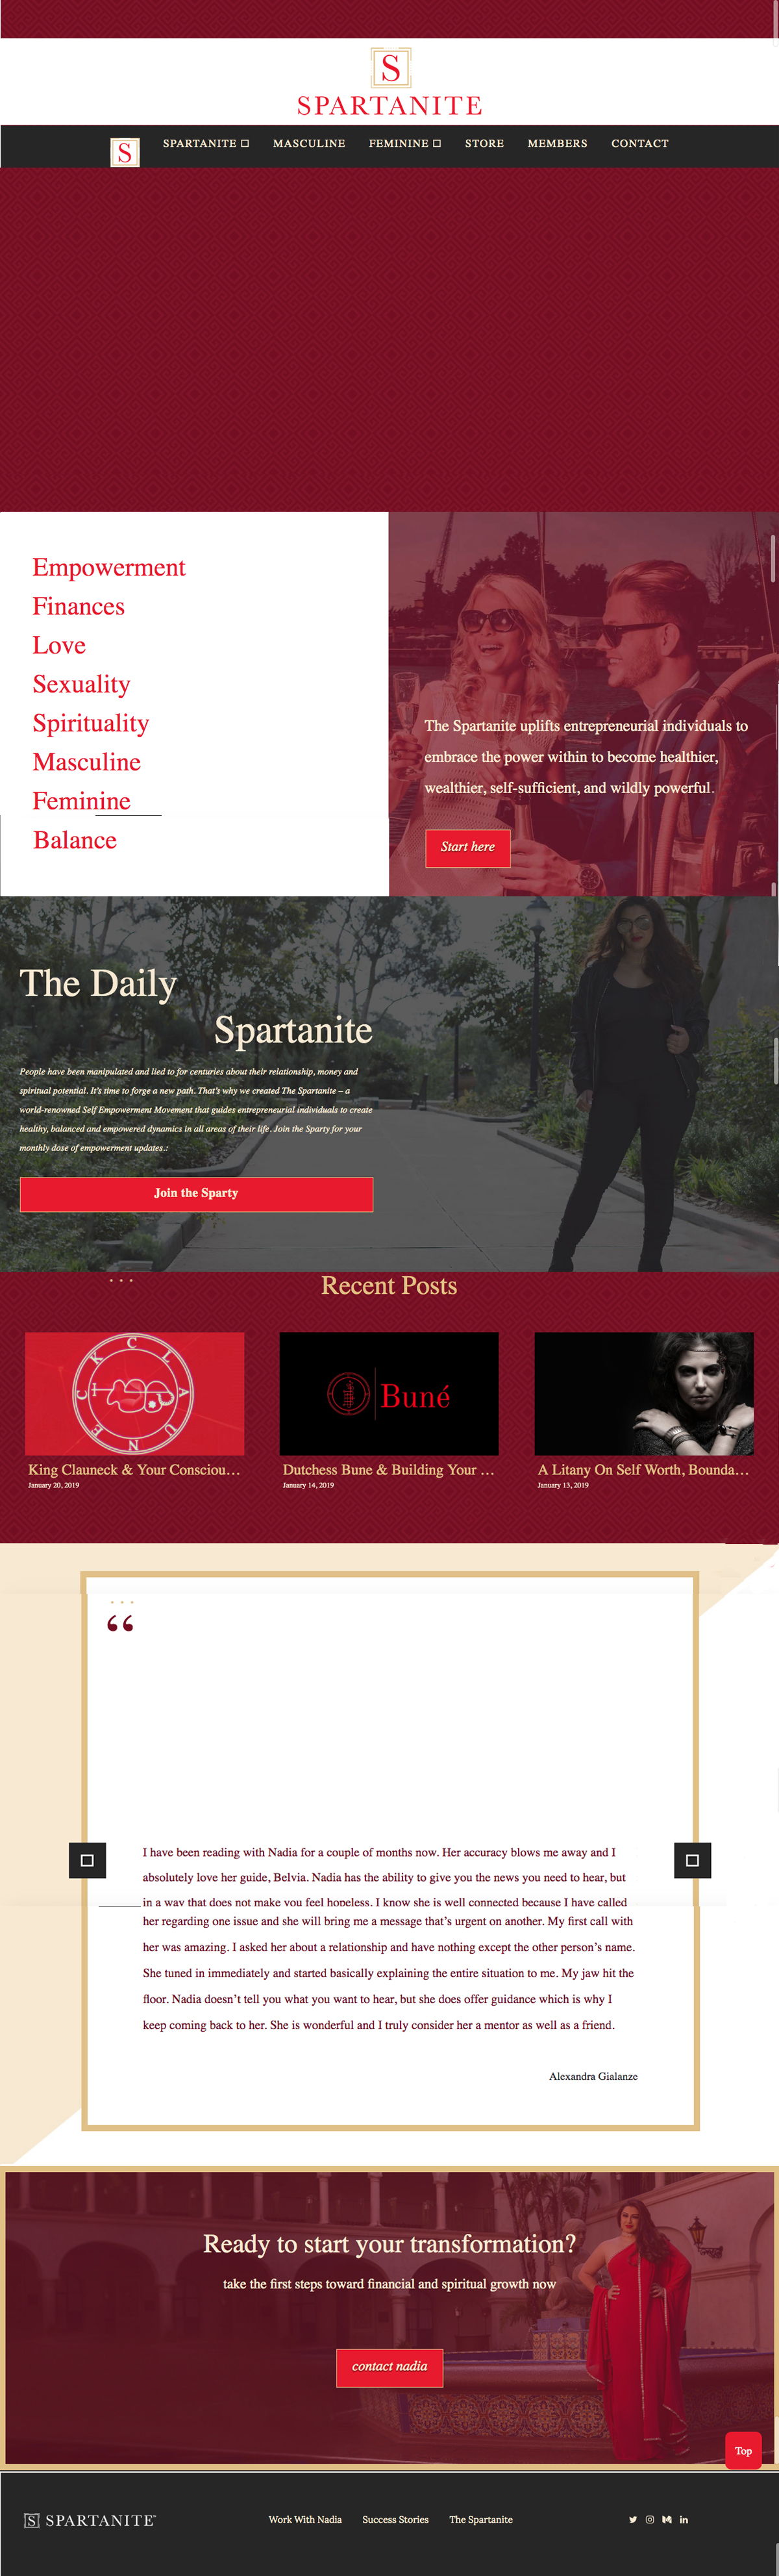 OLD WEBSITE - click image to see more